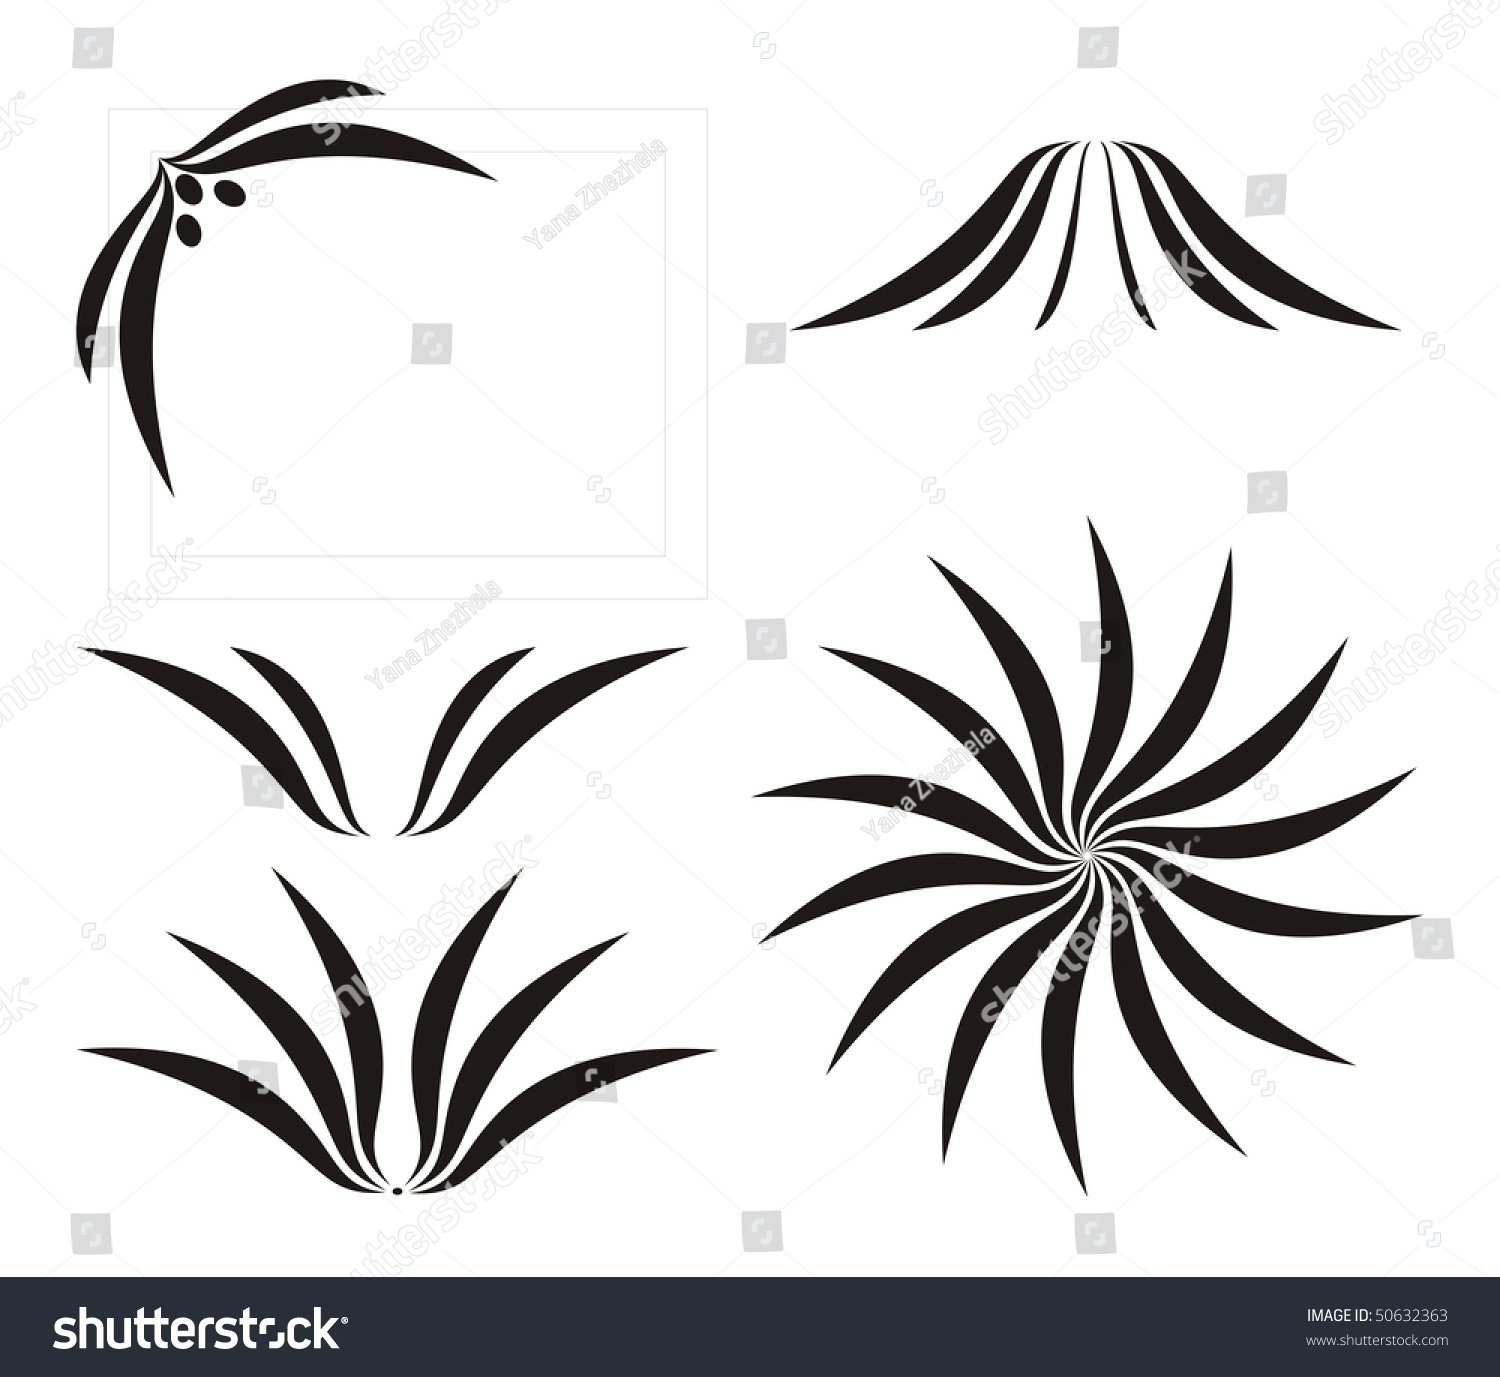 Abstract flower calligraphy decor vector illustration